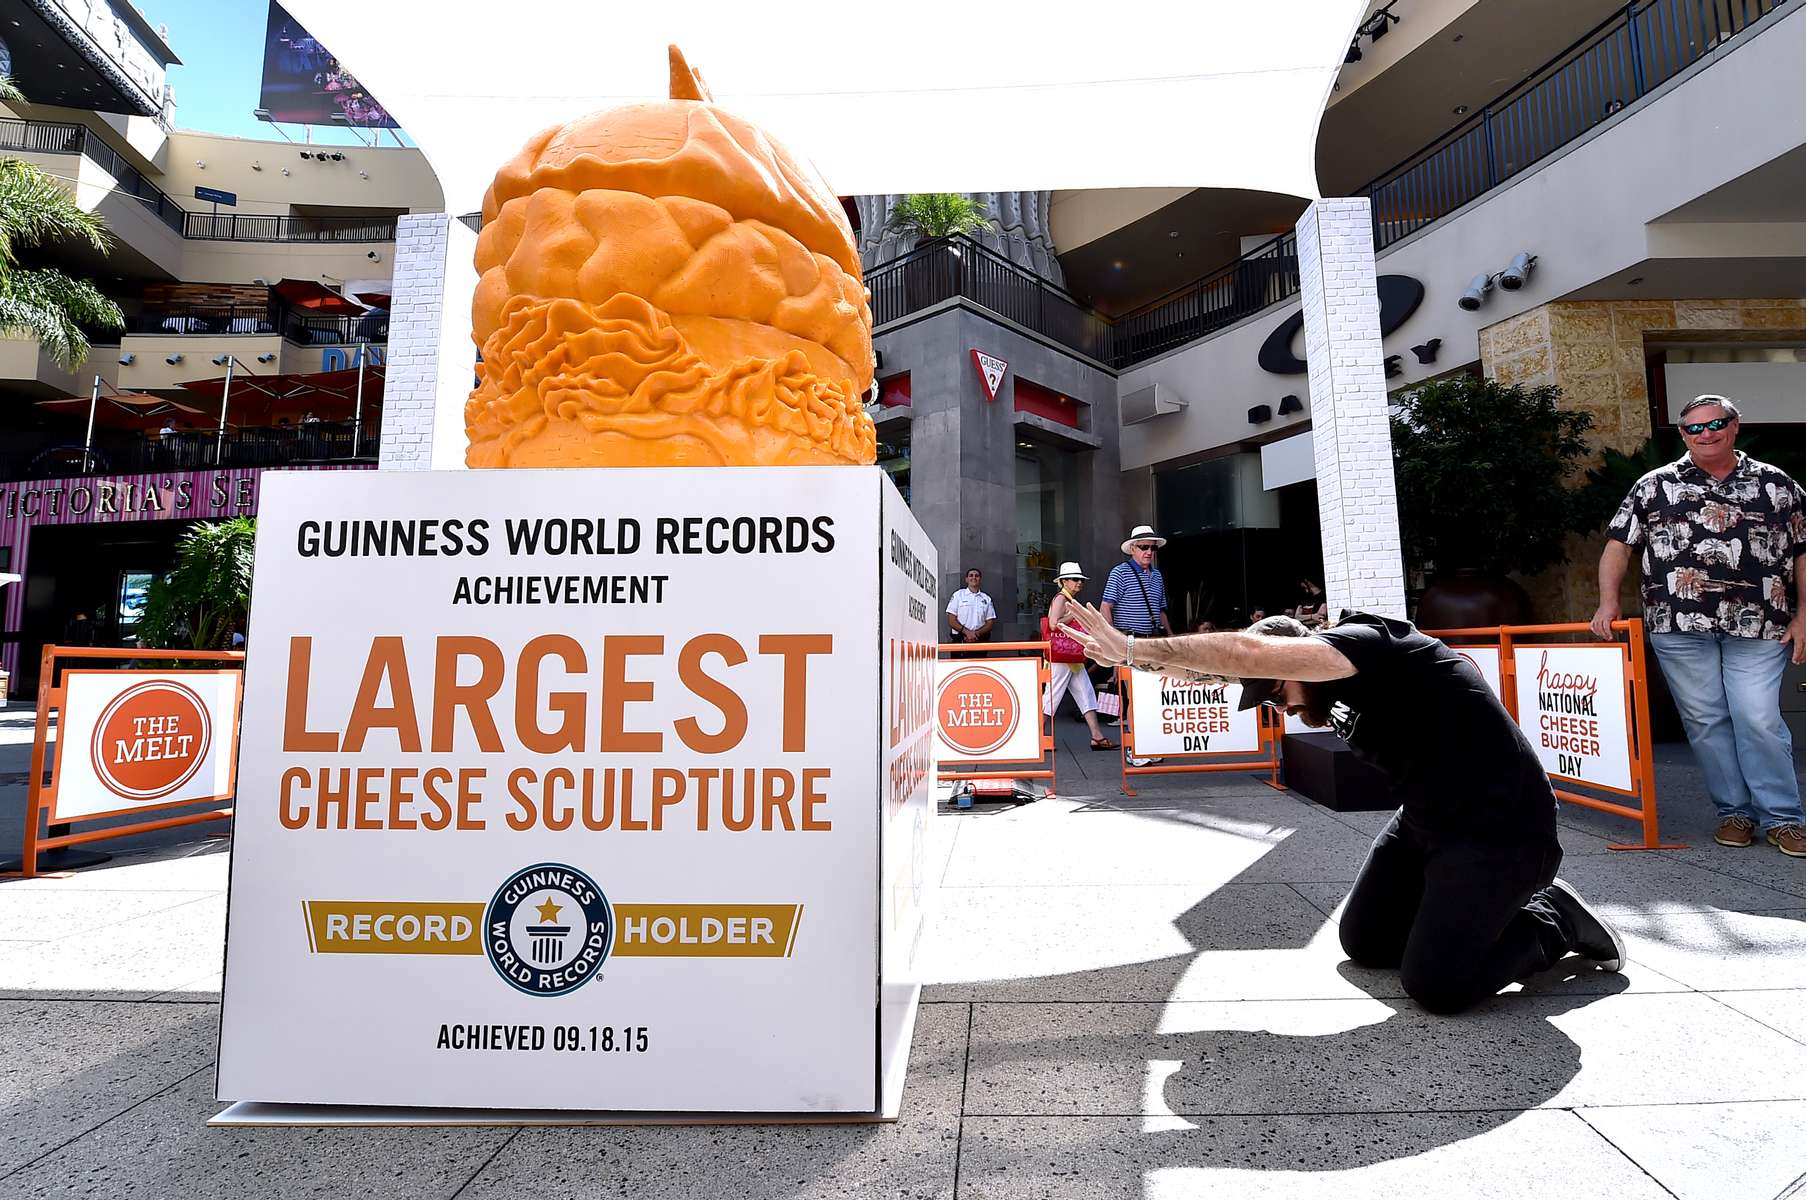 IMAGE DISTRIBUTED FOR THE MELT - Kyler Clark of Georgia pays homage to THE MELT's GUINNESS WORLD RECORDS® Largest cheese sculpture on Sept. 18, 2015, in celebration of National Cheeseburger Day. The Melt partnered with renowned cheese sculptor Troy Landwehr to create the 1,524 pound, record-breaking sculpture, fittingly carved in the shape of a cheeseburger, complete with a pickle on top. (Photo by Jordan Strauss/Invision for The Melt/AP Images)